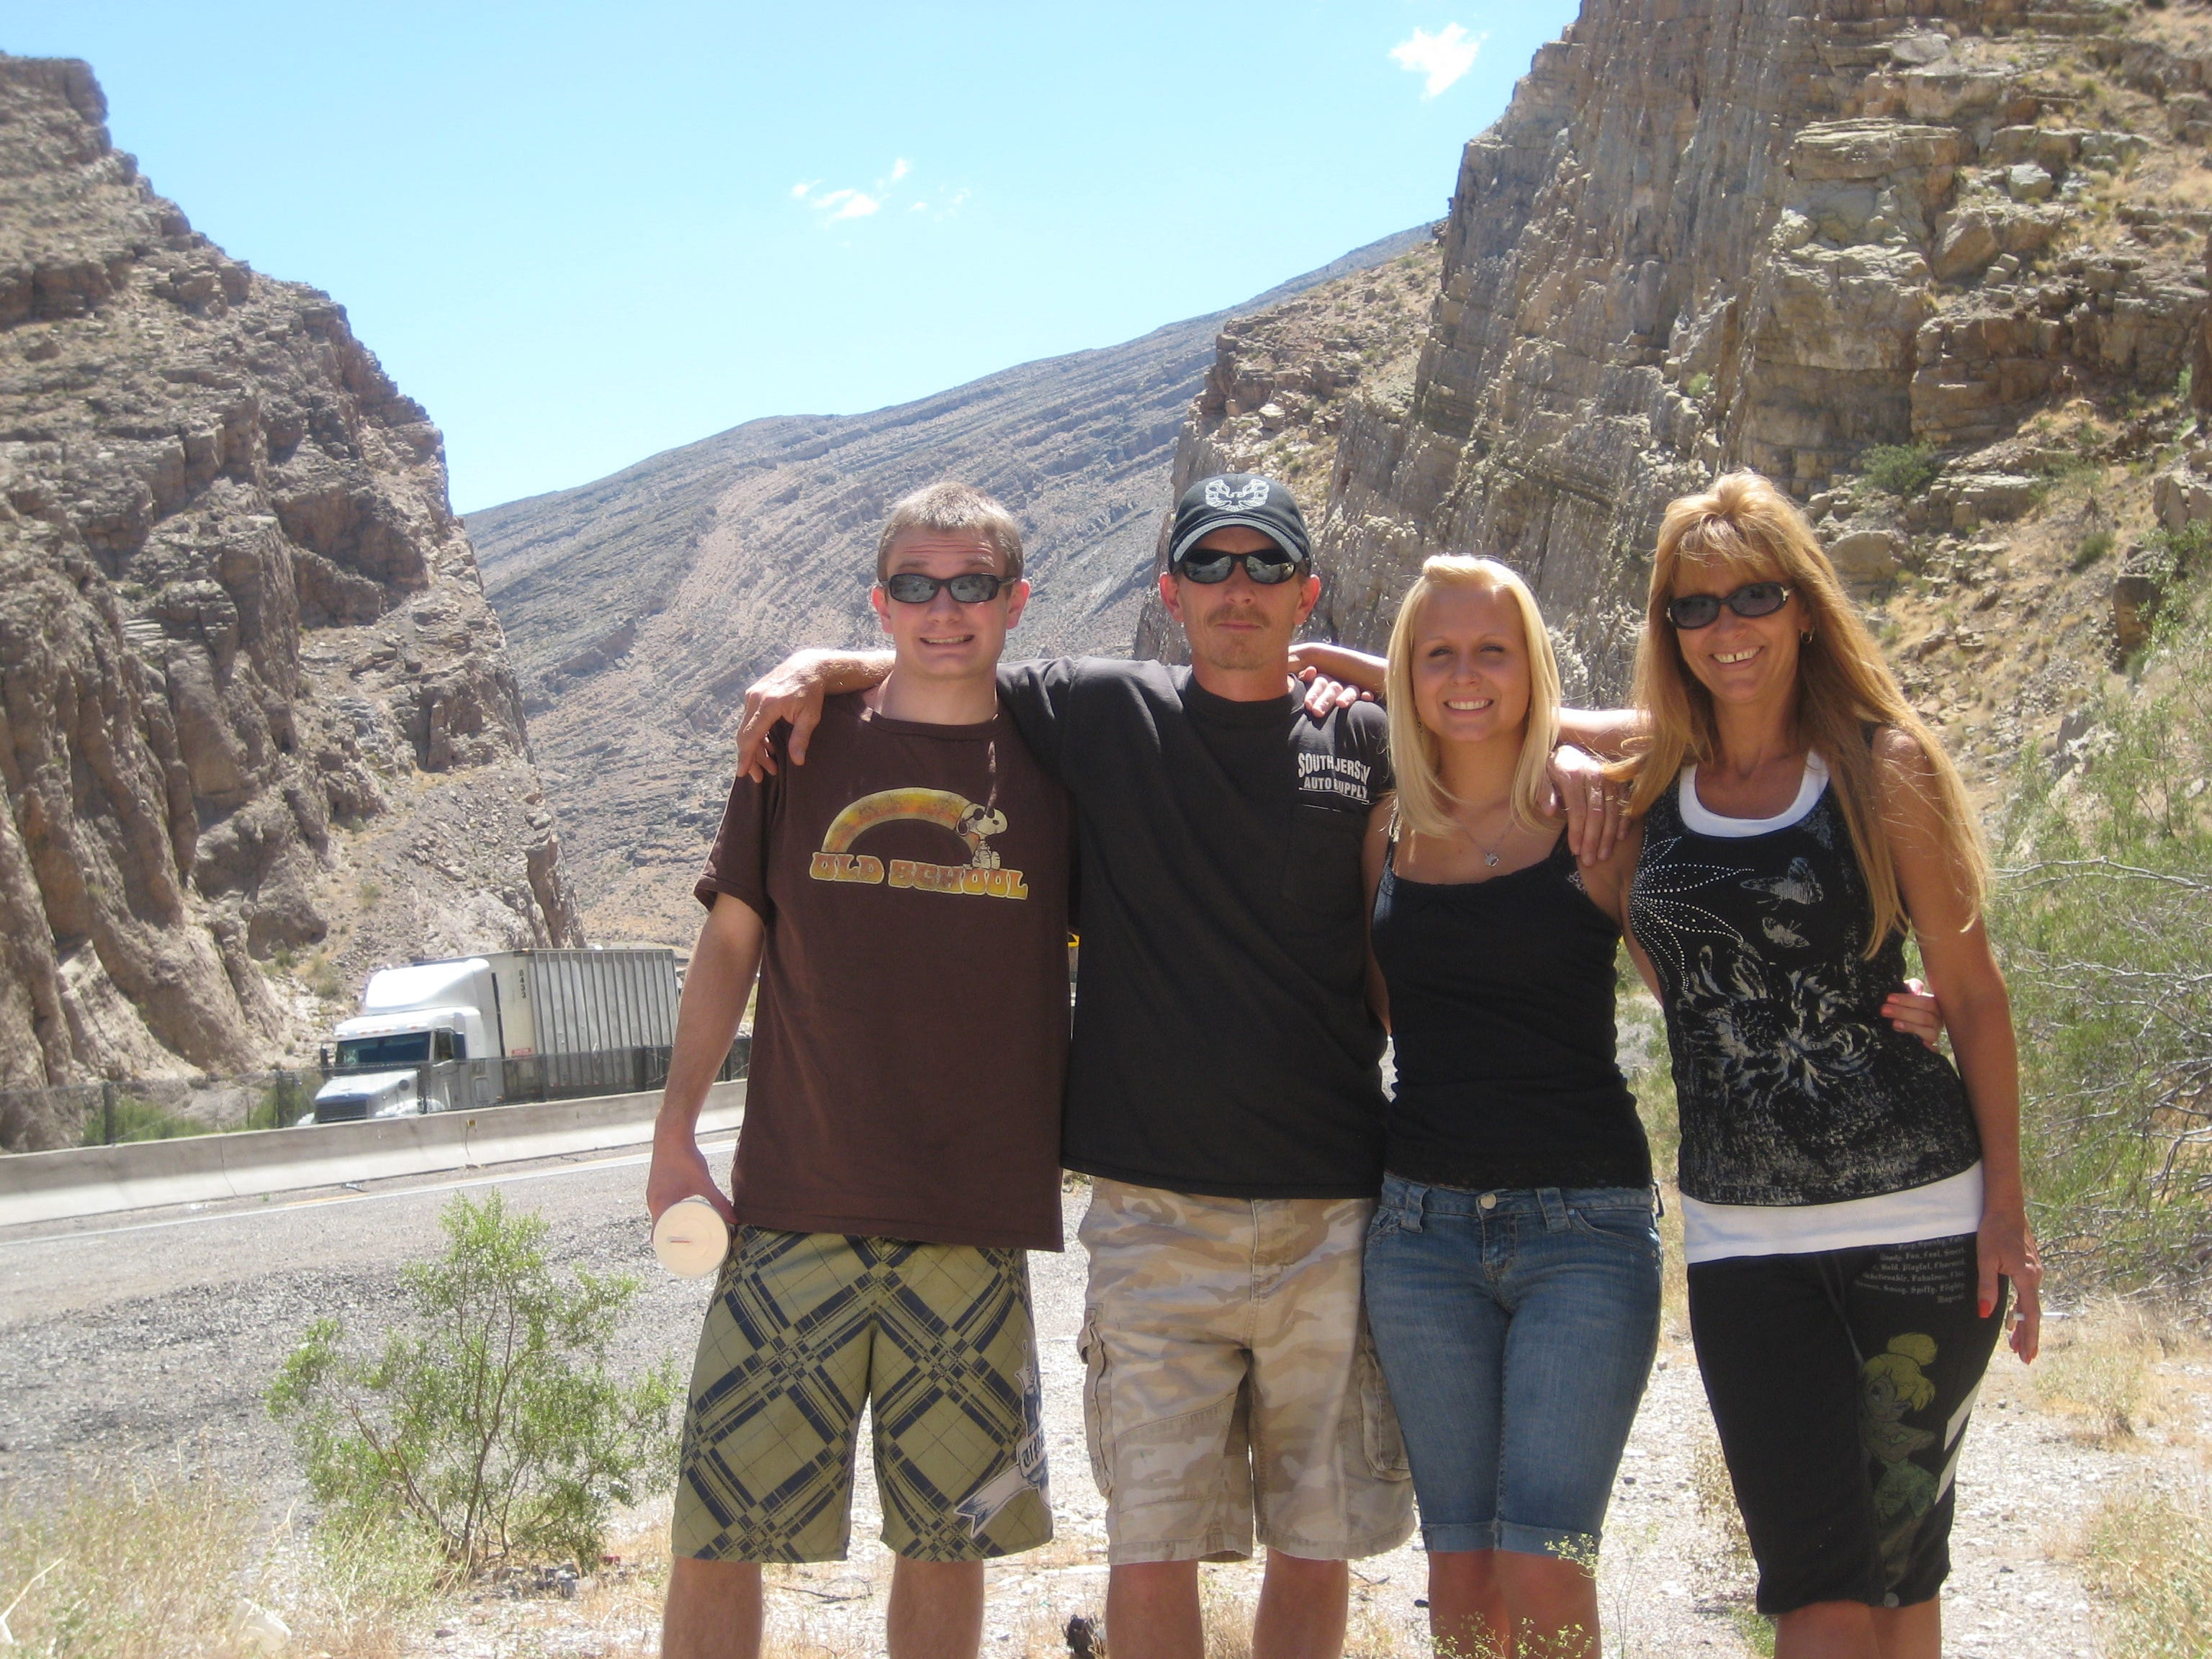 Michael Riley (left) poses for a vacation family portrait with his father, Leonard Riley; his sister, Jessica, and his mother, Jennifer, at Zion National Park in southern Utah. Before he began experiencing violent episodes, Michael Riley was healthy and active, his parents said.